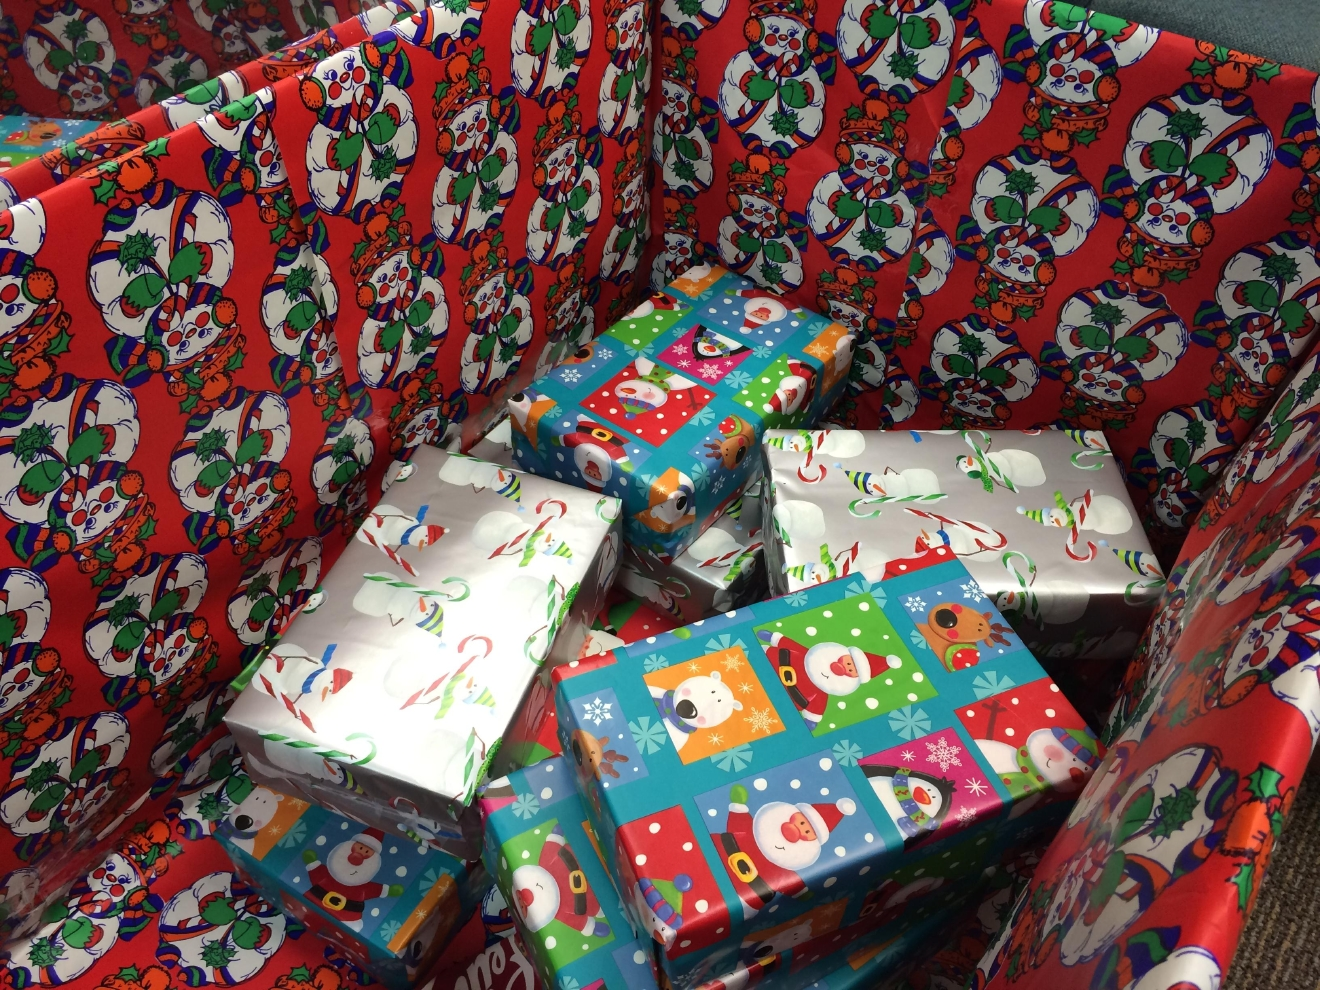 NBC 16 and Les Schwab are partnering together to collect toys for children in need in Lane County. The toys will go to local non-profits. If you would like to donate, bring unwrapped toys to any Les Schwab location in Lane County or to KMTR. (SBG photo)